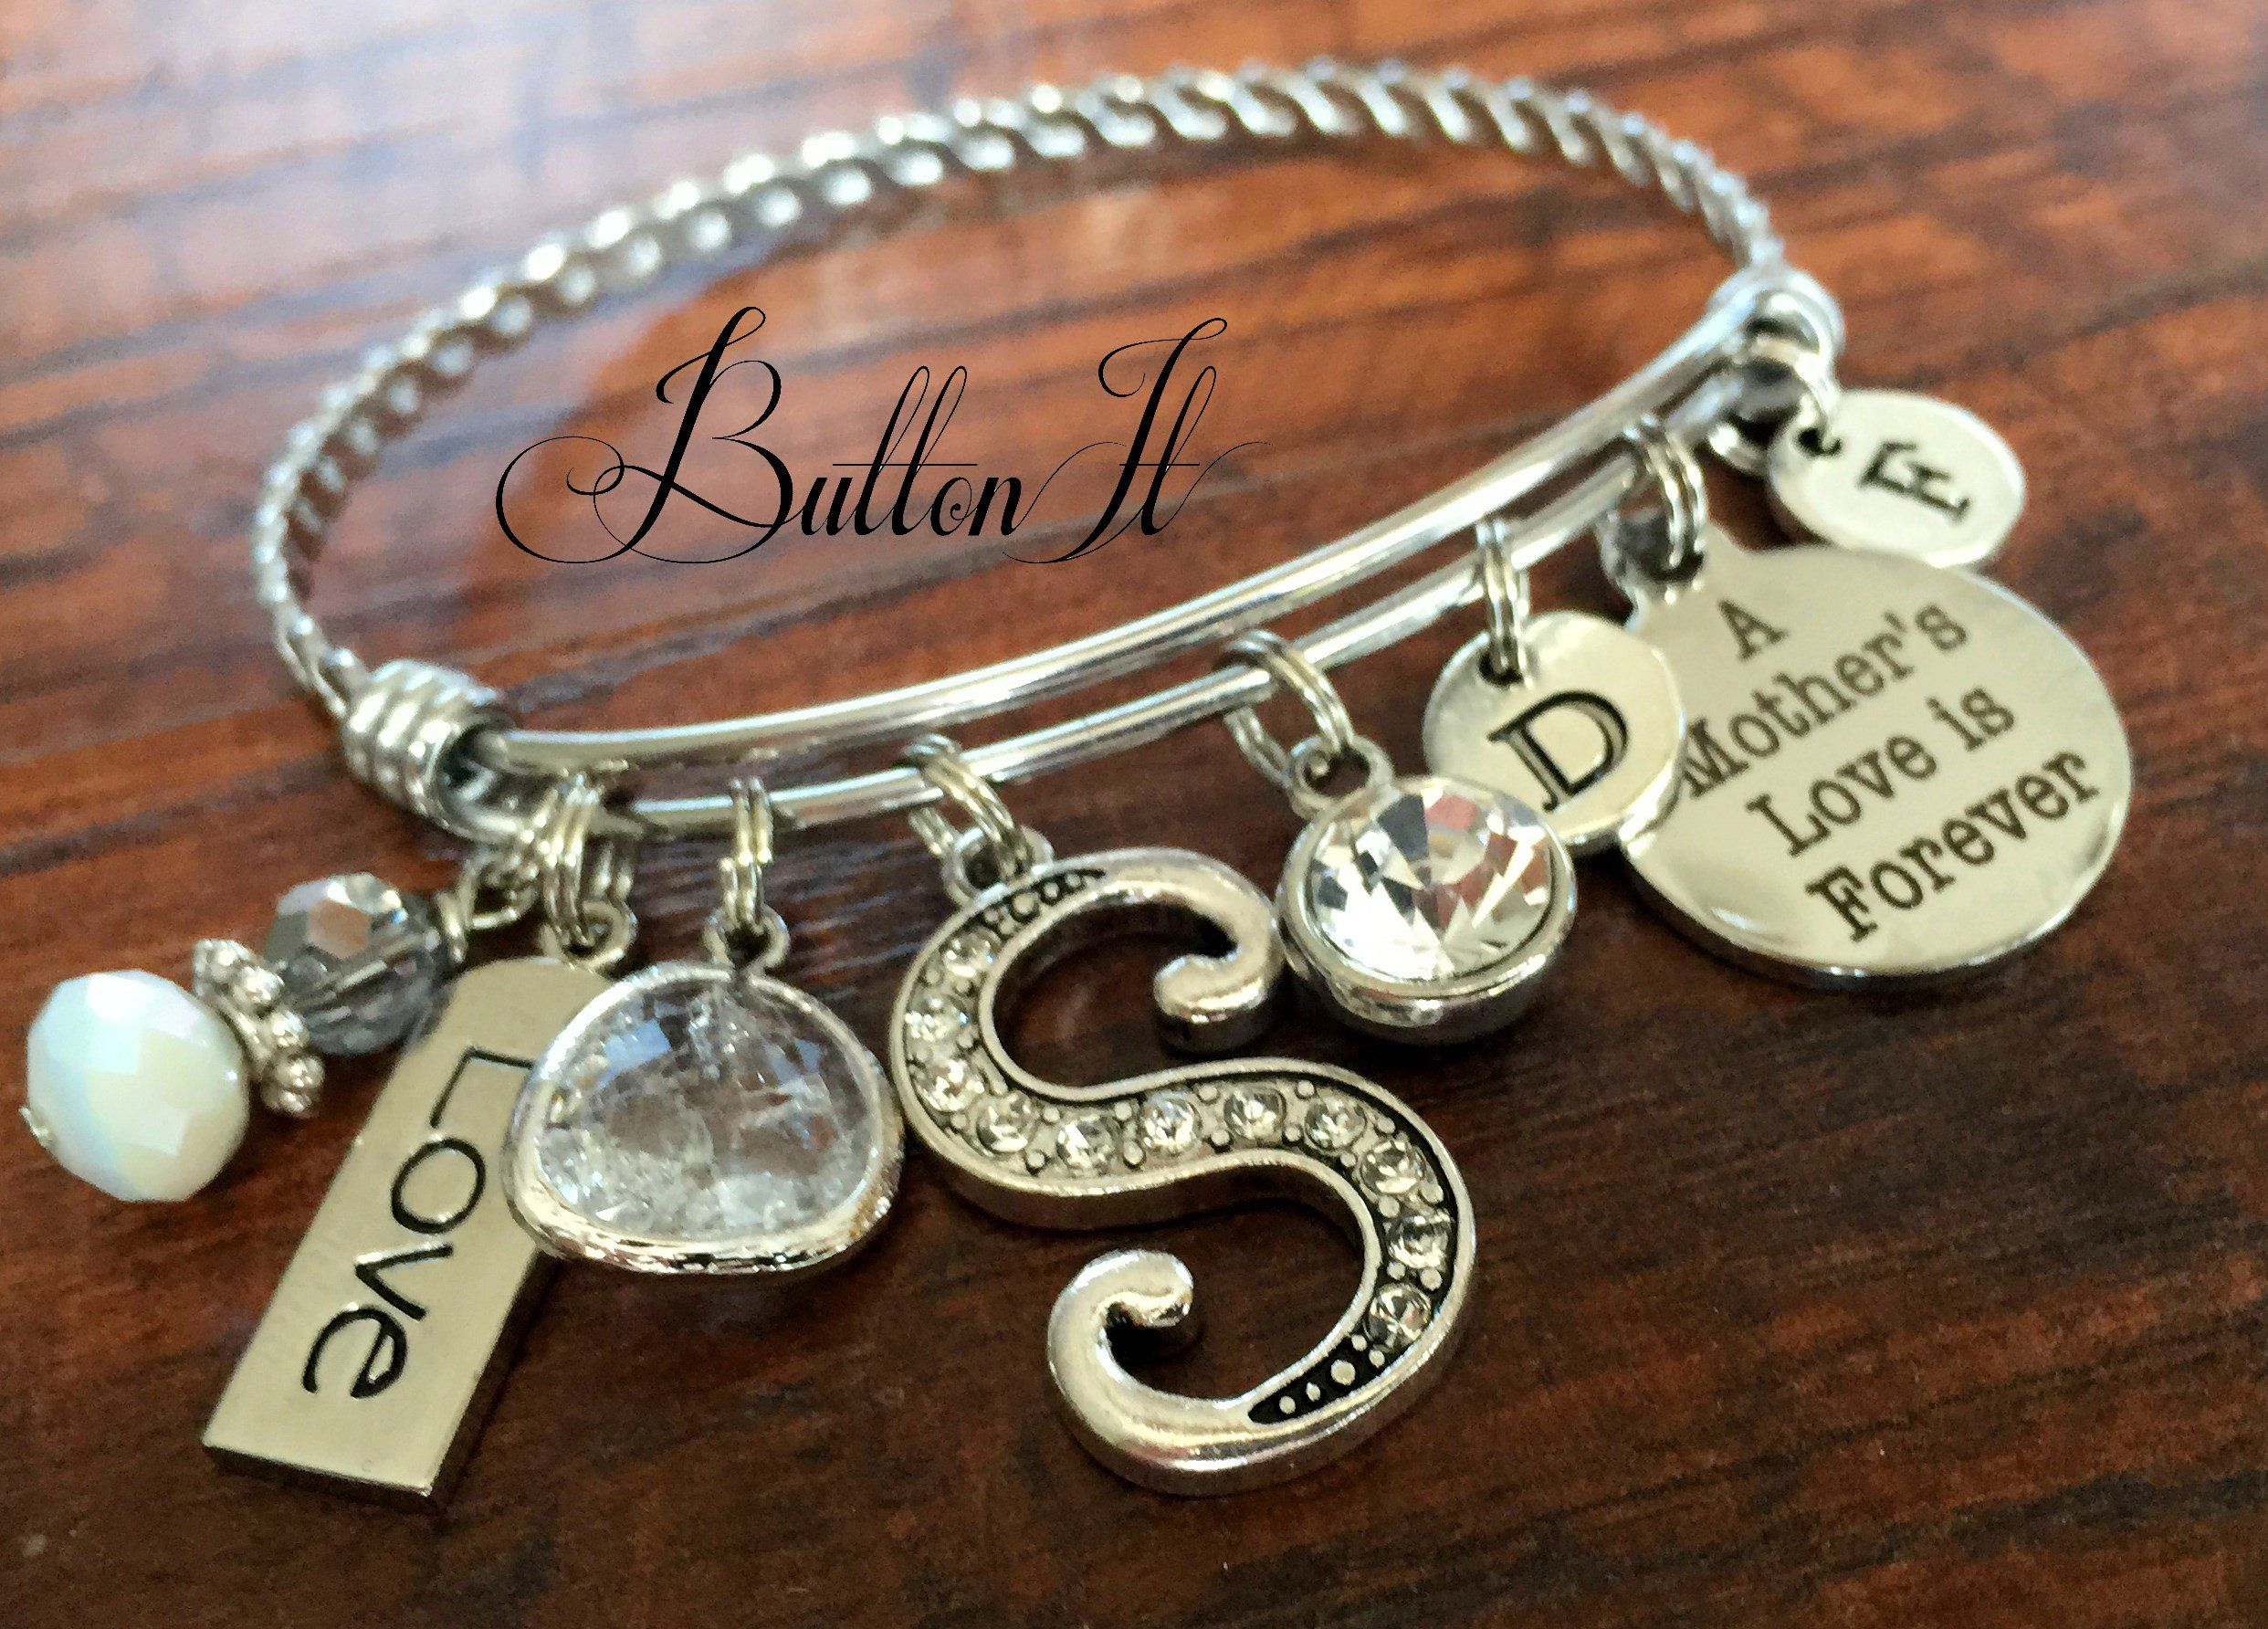 from gift fullxfull il gallery bracelet jewelry listing mother for sterling son linked infinity photo kimt mom